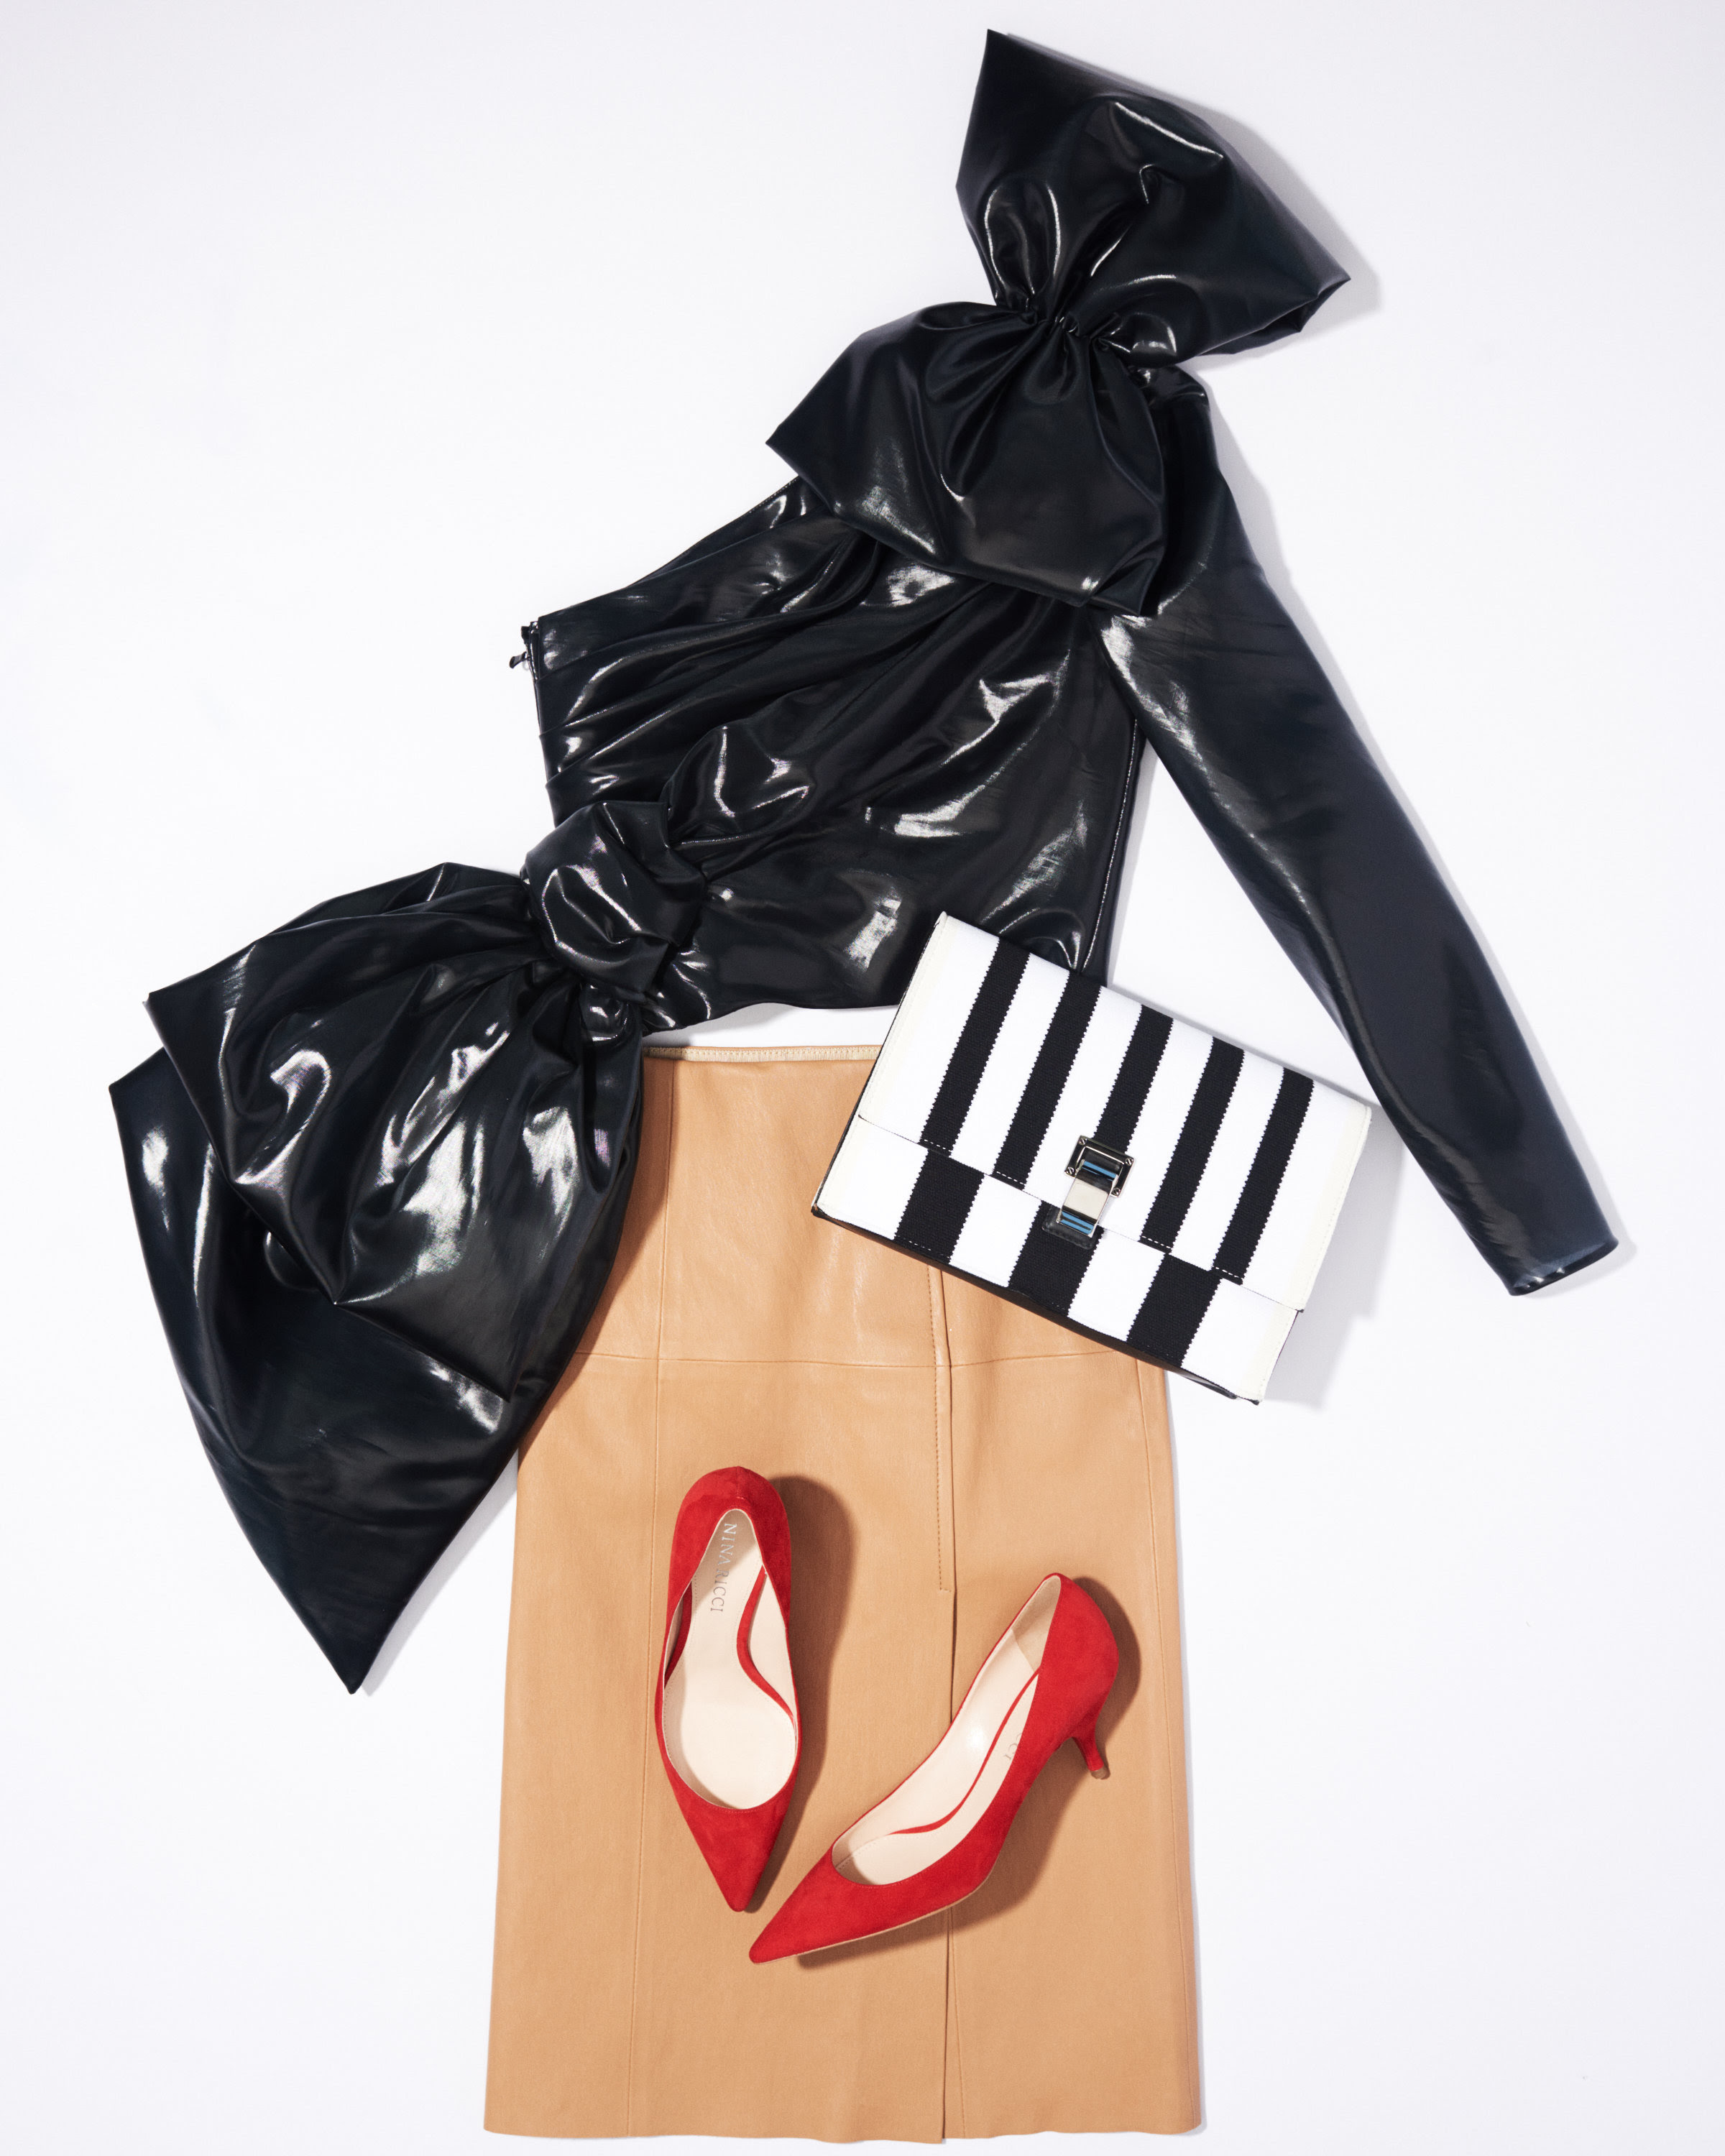 Moschino Bow Top $1,790 | Proenza Schouler Lunch Bag $ 850 | Joseph Skirt $1,145 | Nina Ricci Kitten Heel $560